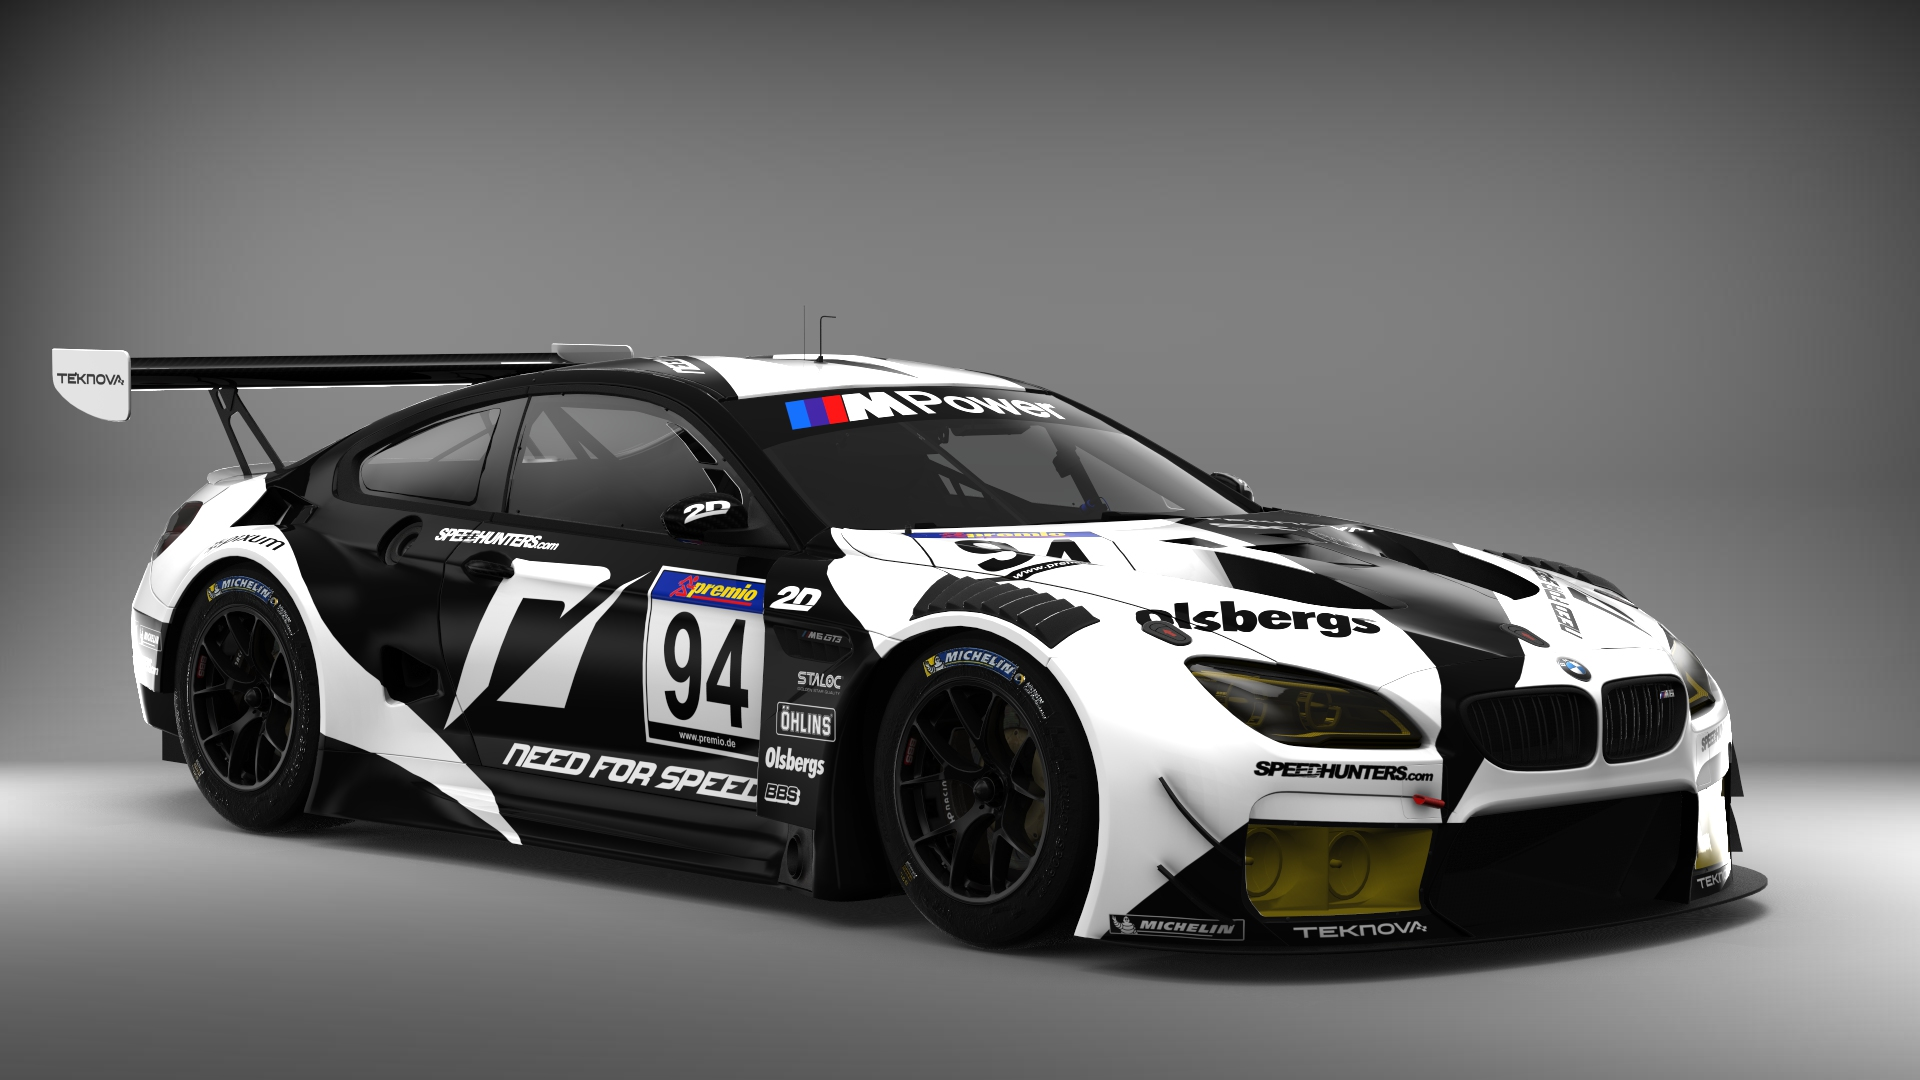 Bmw M6 Gt3 Andyblackmore S Need For Speed Livery